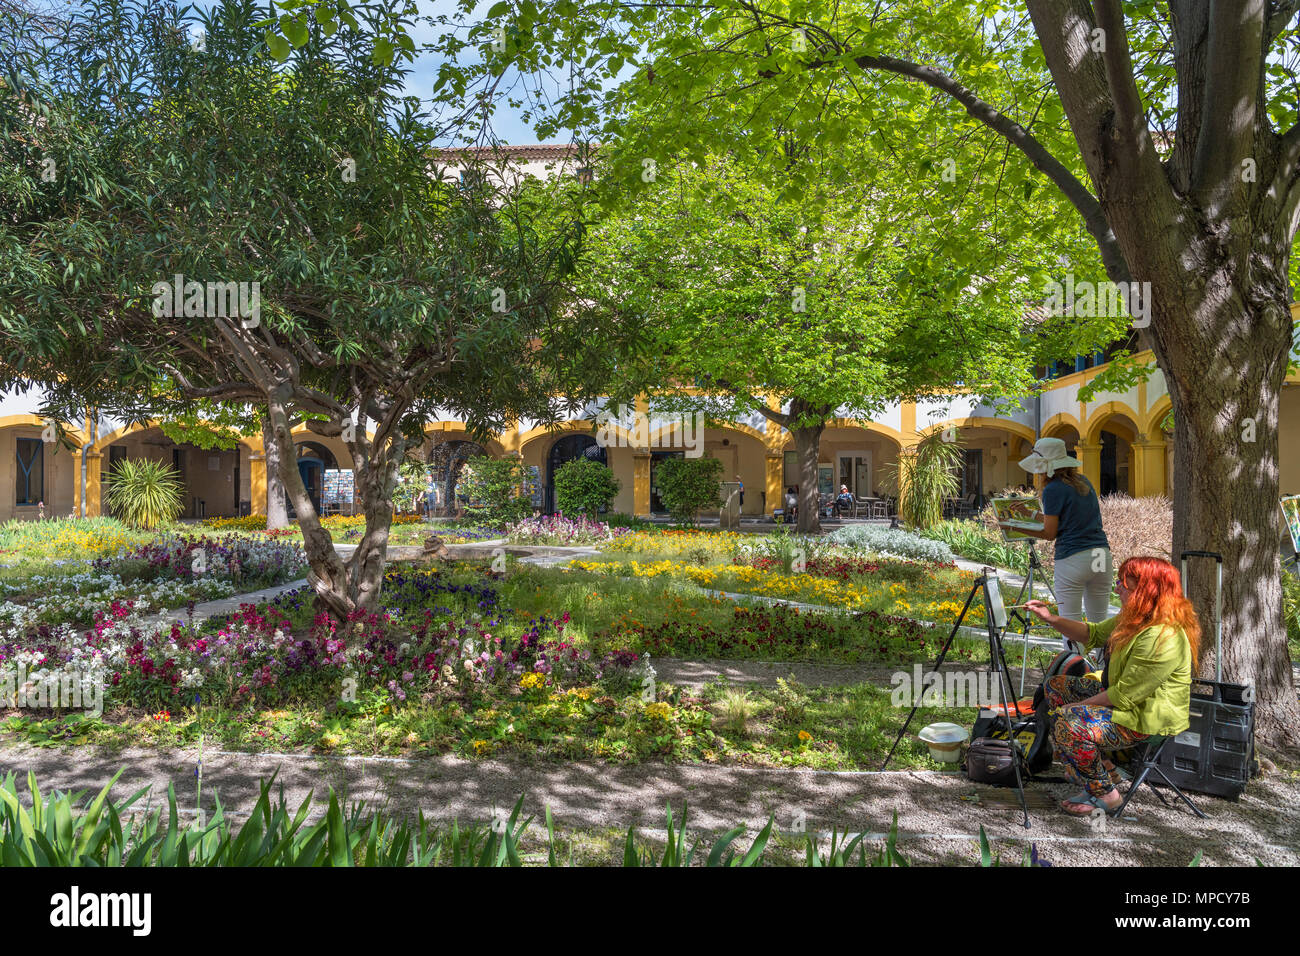 Artists painting in the courtyard of the Hospital at Arles, now called l'Espace Van Gogh, Arles, Provence, France - Stock Image